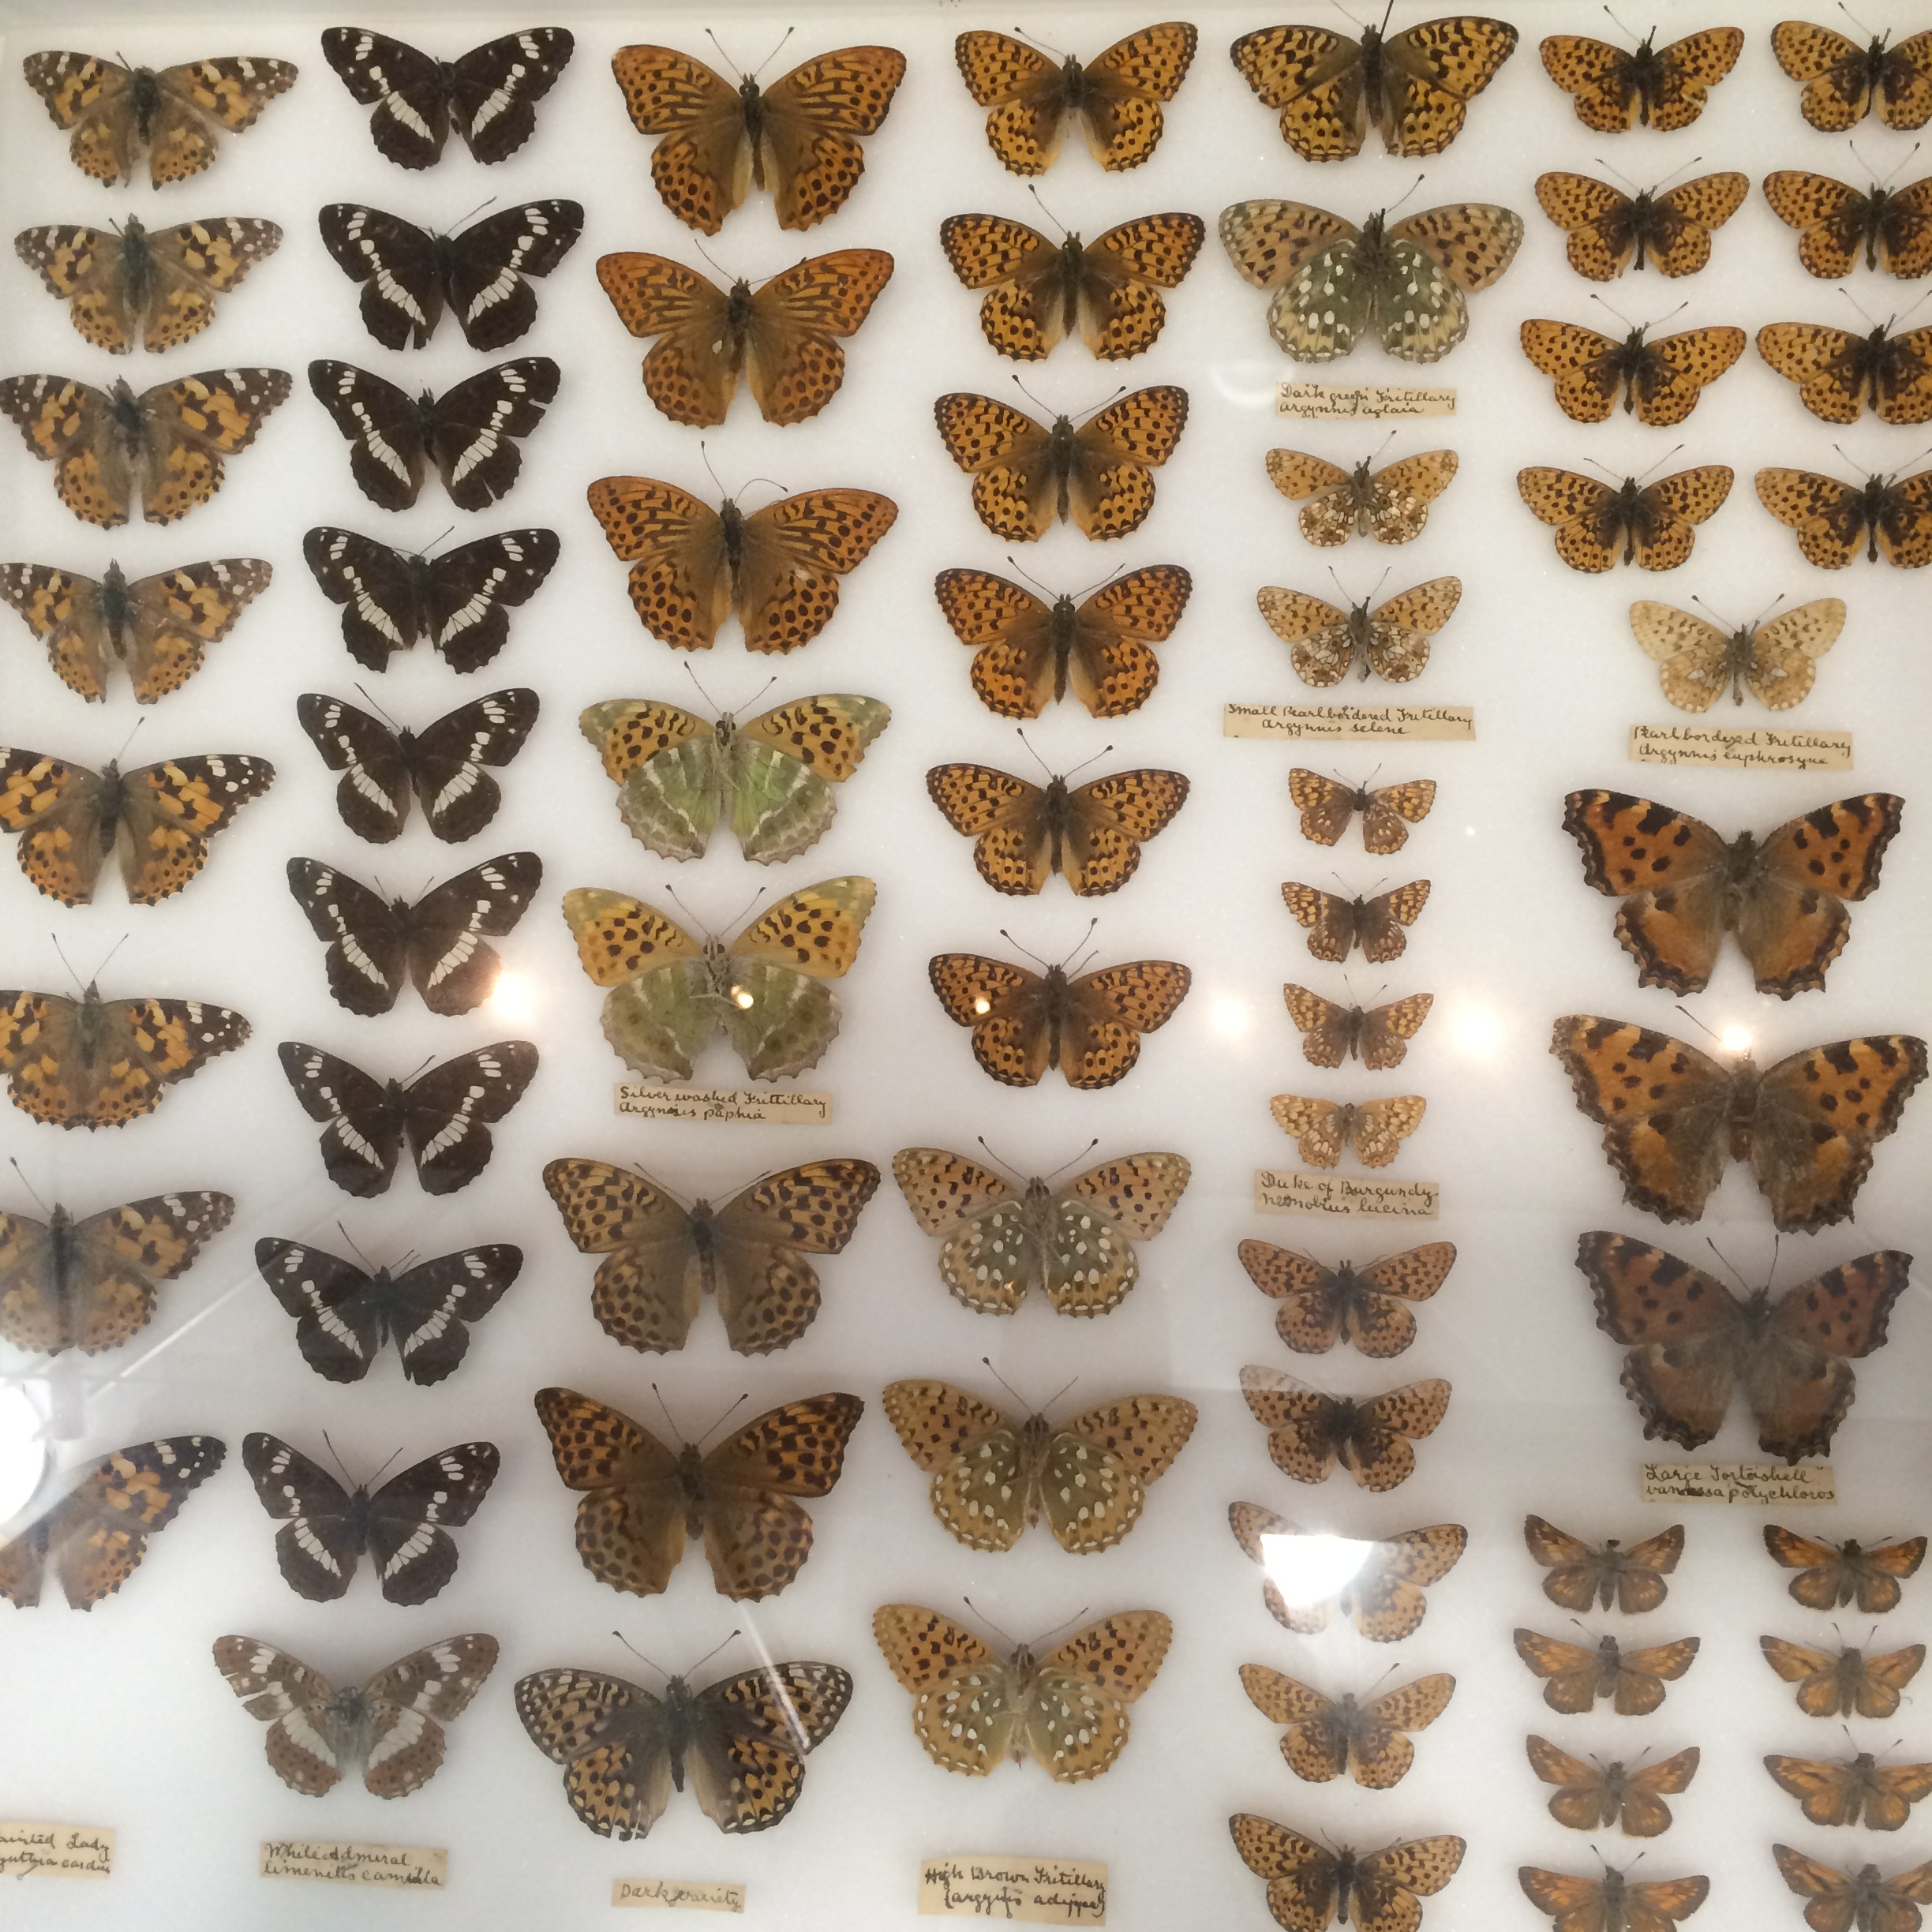 Wooden display cases of moths & butterflies, collected from the Claygate area by Edward James Smith, c.1894-7.